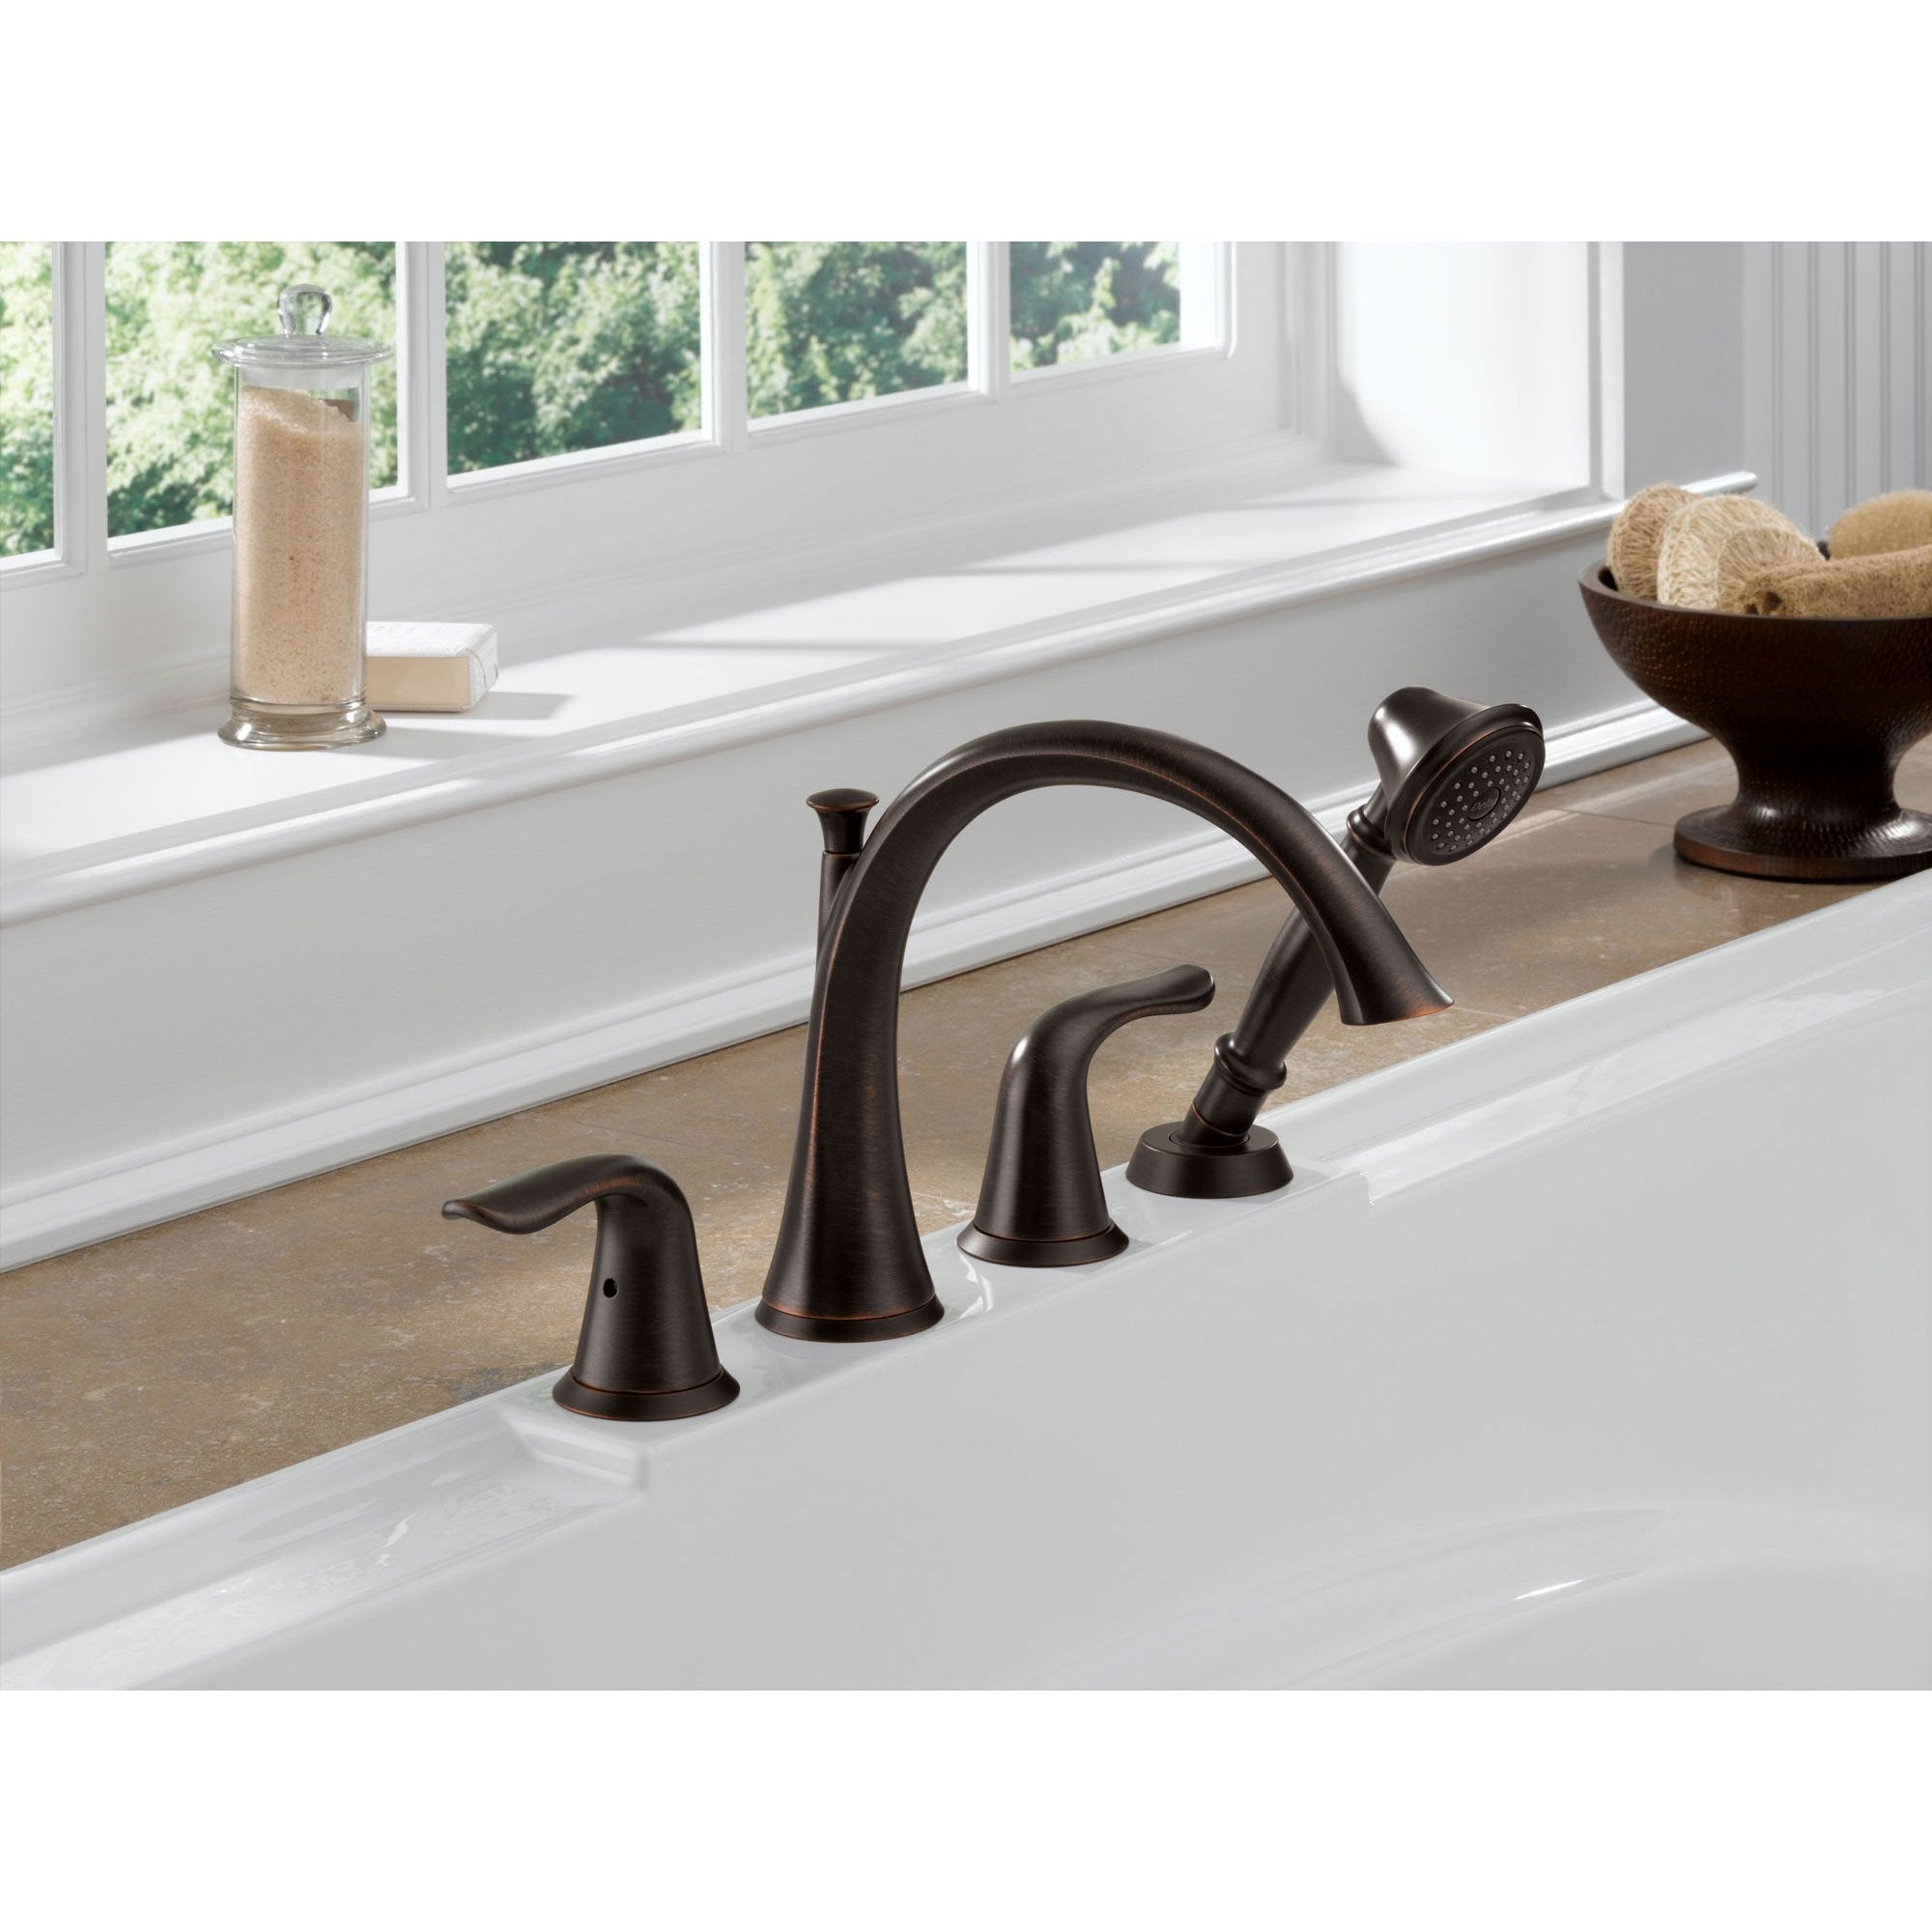 Delta Lahara Venetian Bronze Roman Tub Faucet With Handshower Trim